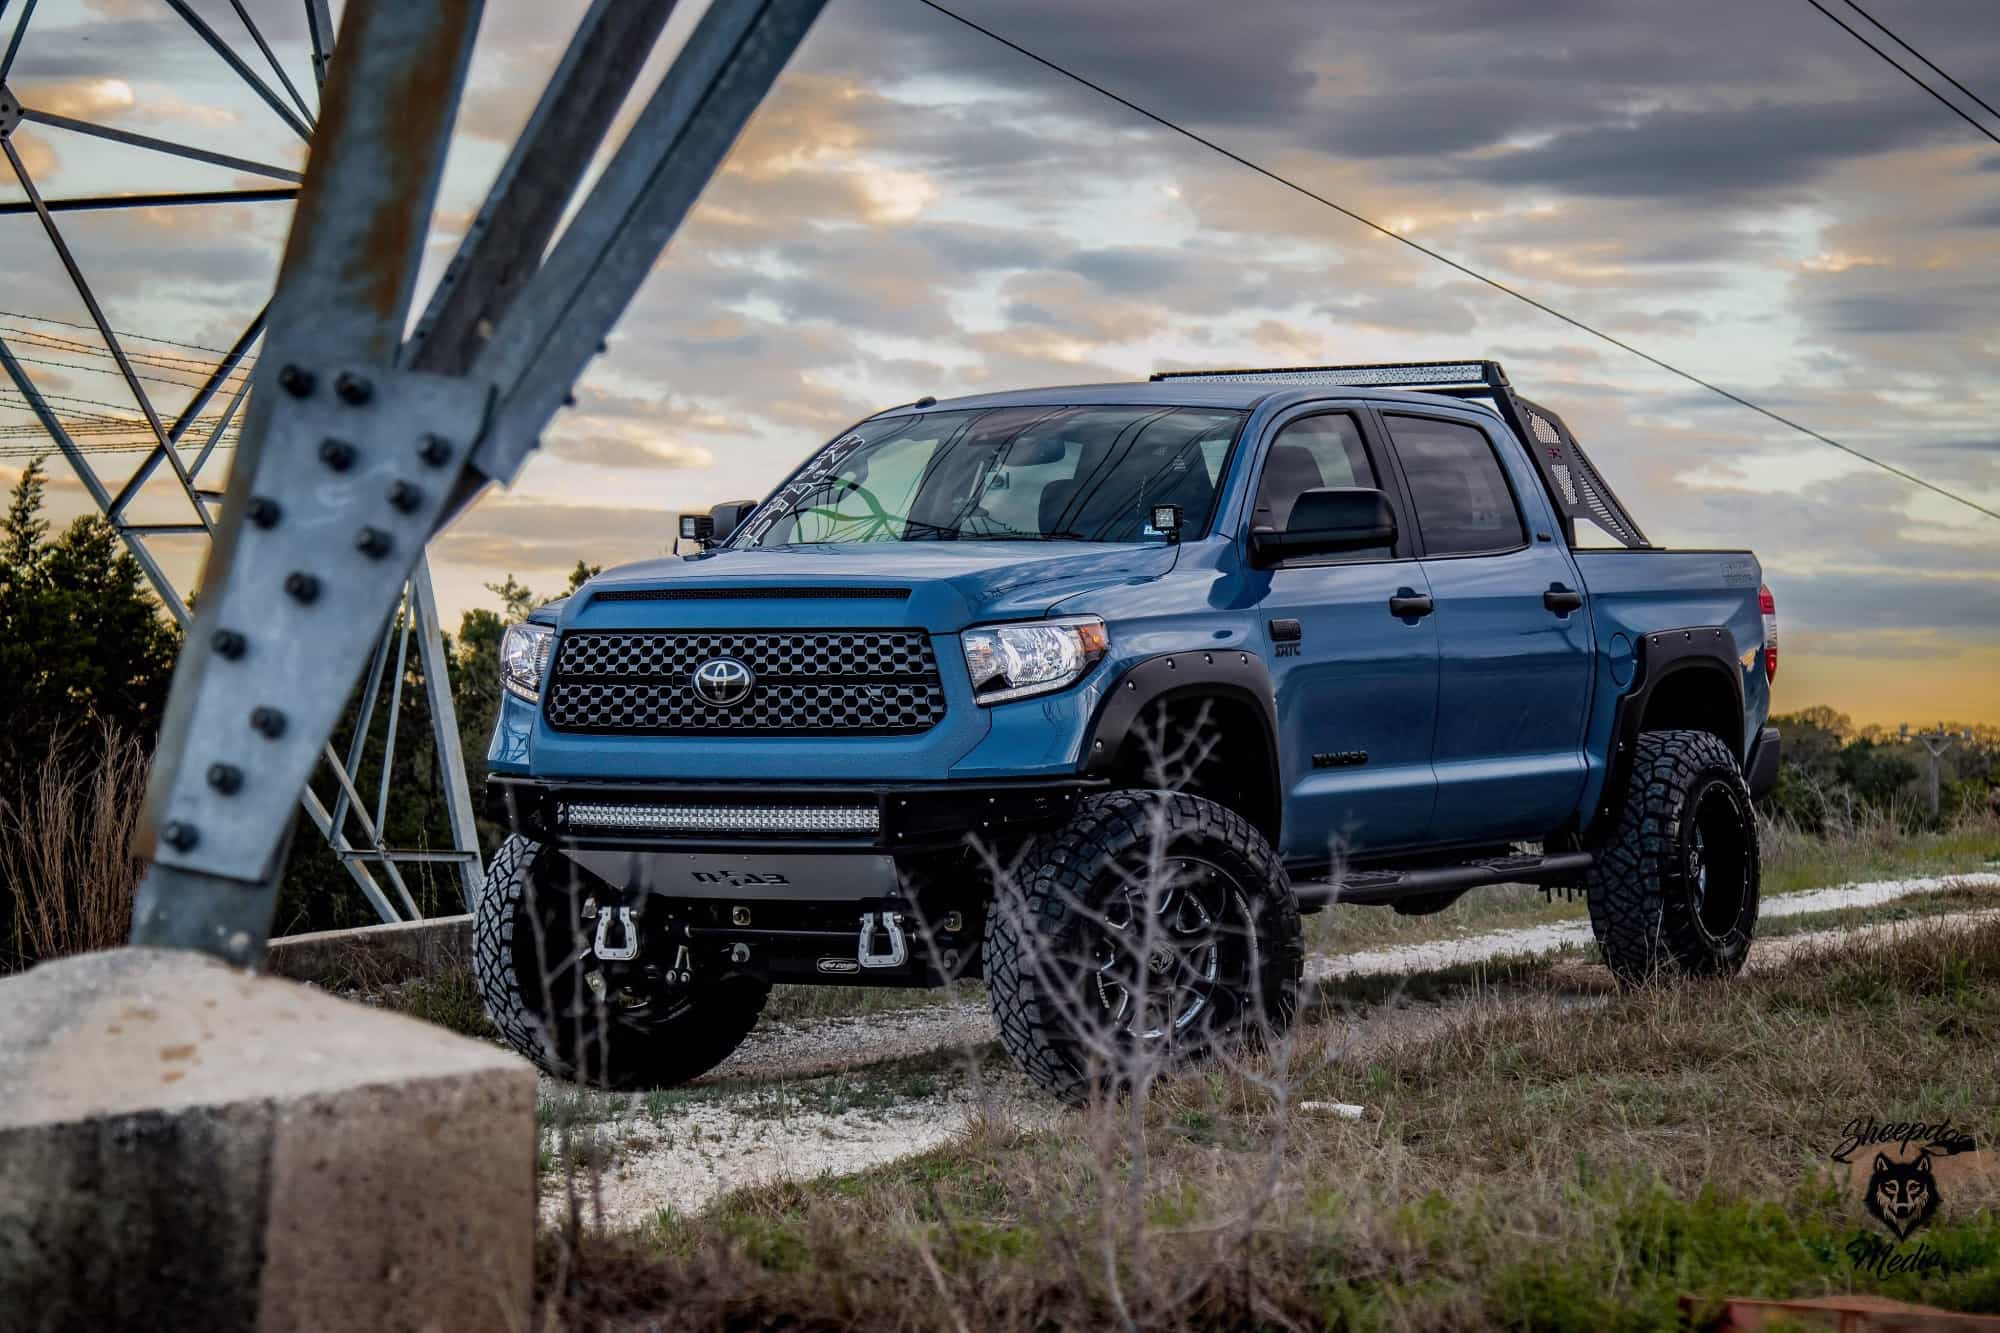 The Best Wheels For The Outdoors: Anthem Off-Road thumbnail